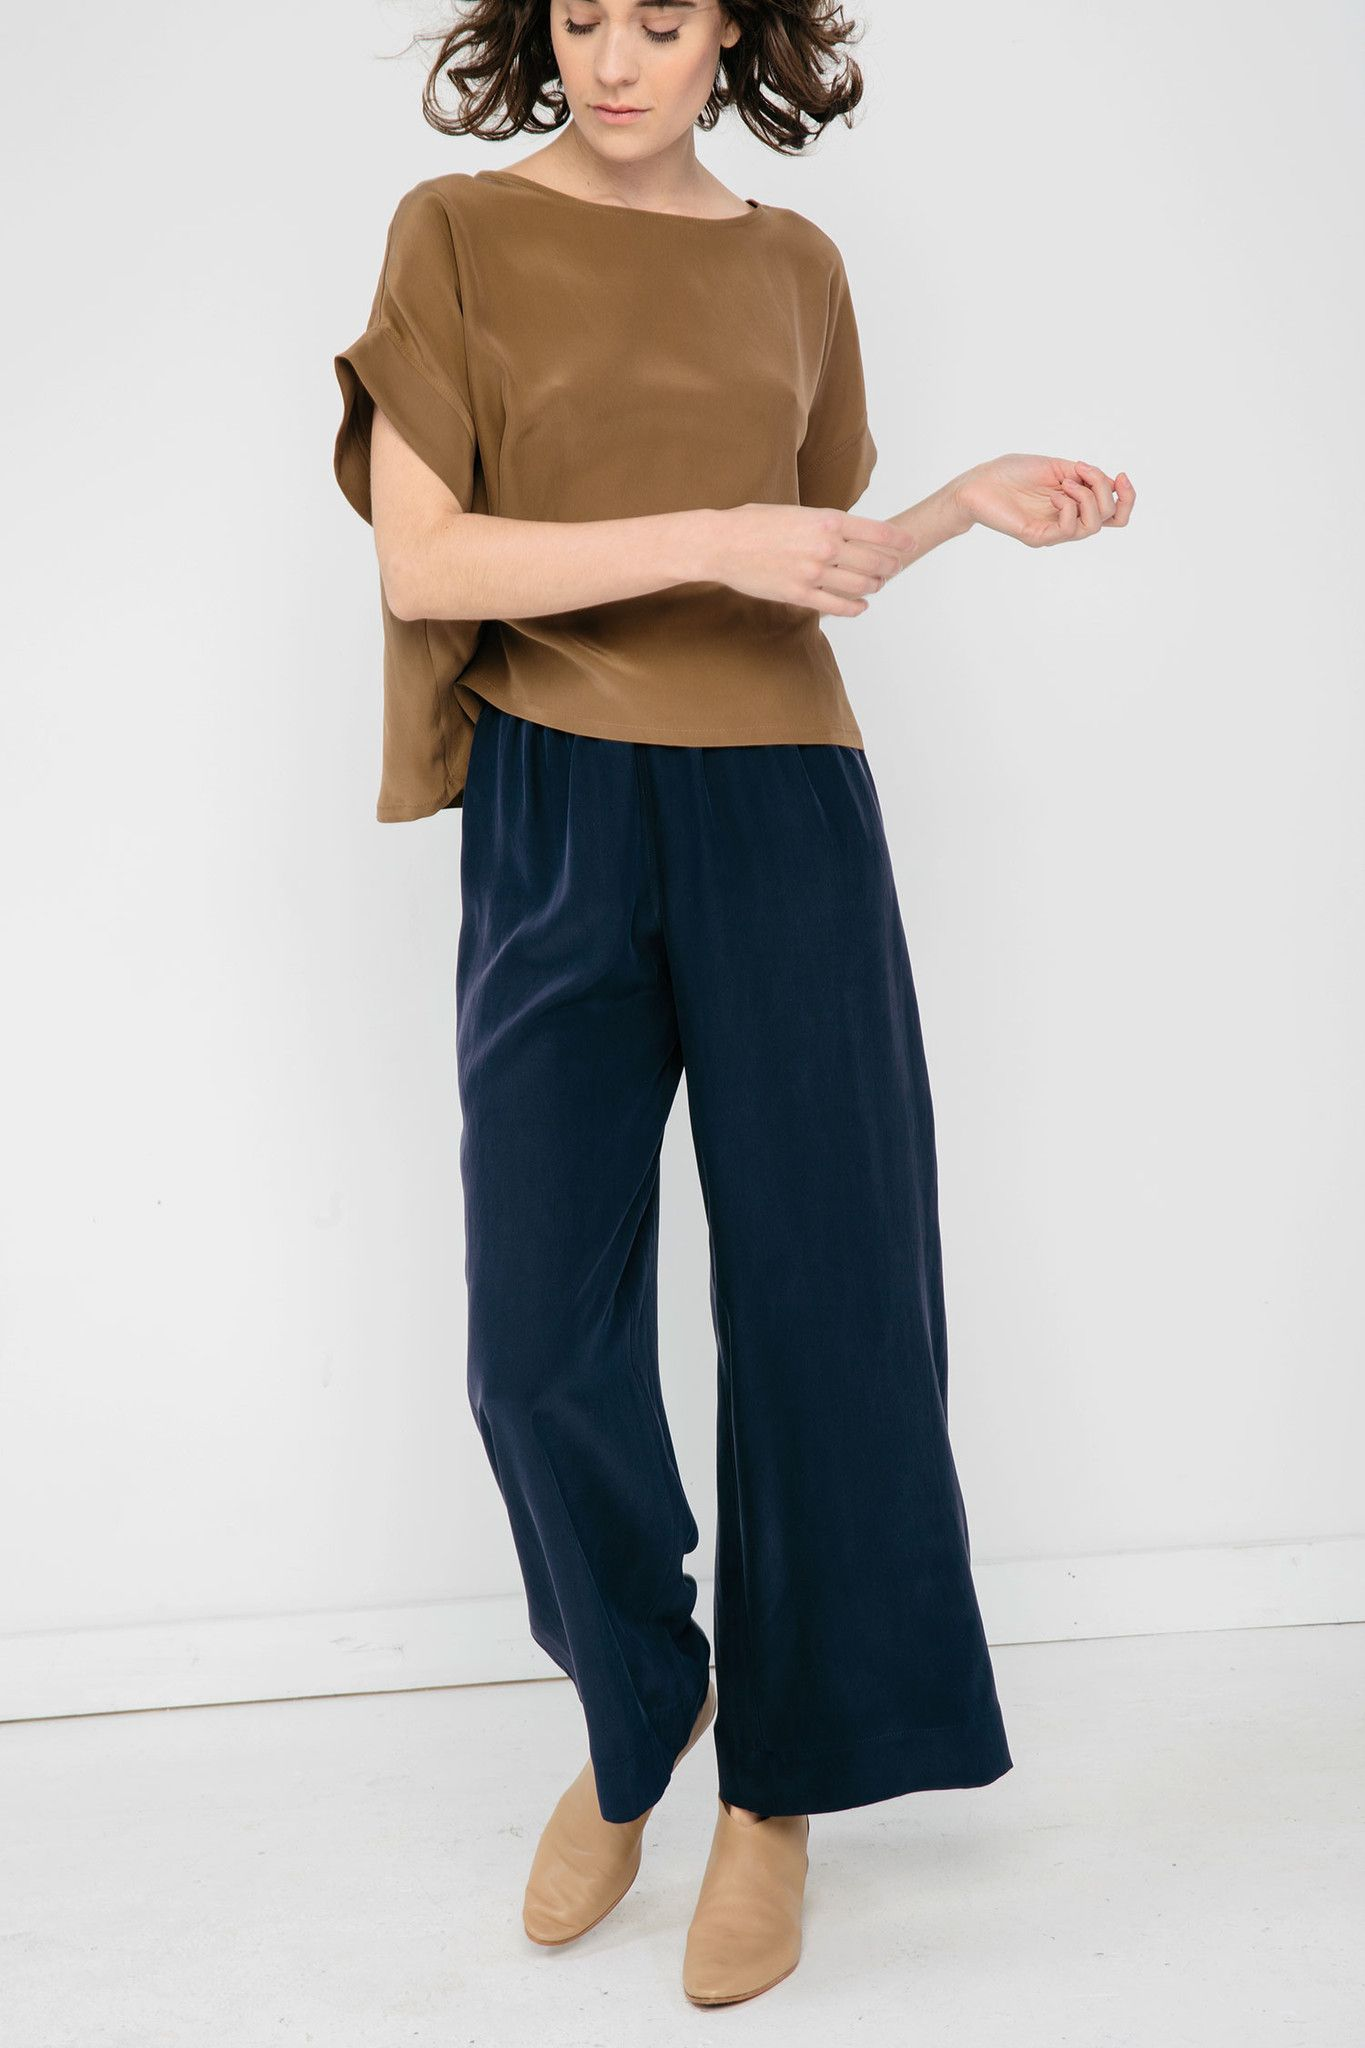 Silk Wear Suzann On Silk Elizabeth Crepe Pants Crushing xF6tYU